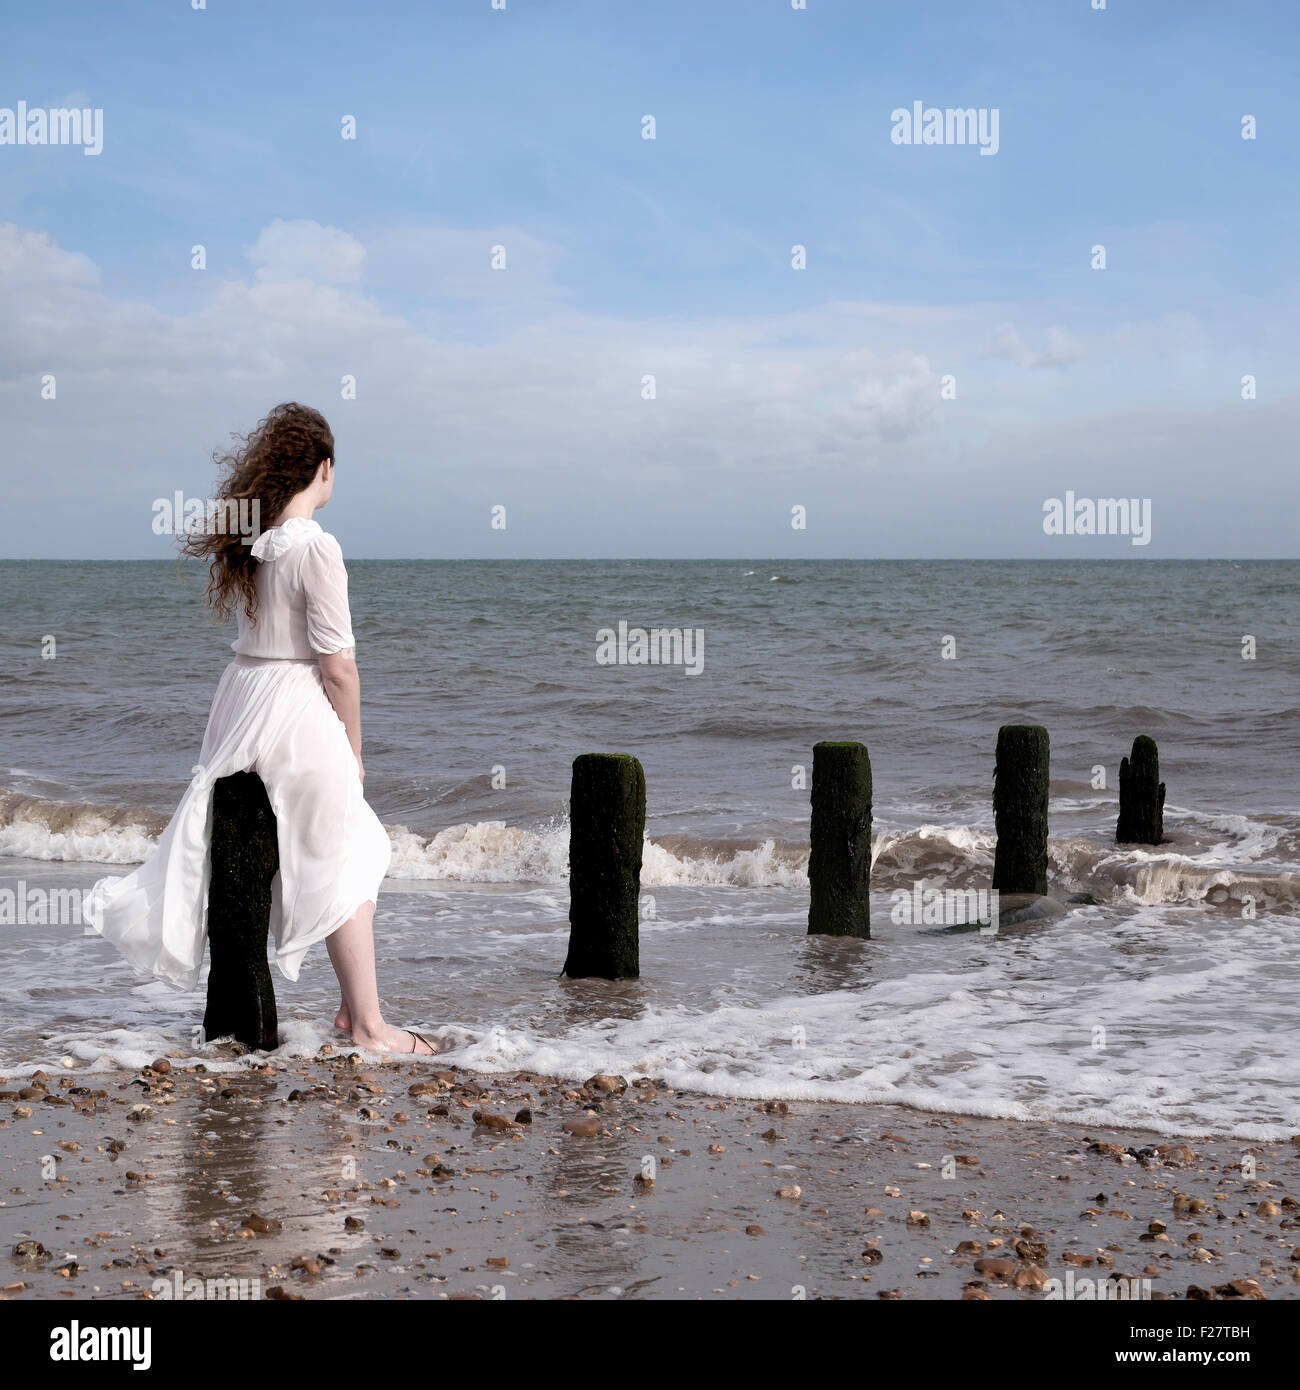 a woman in a white dress is sitting on a wooden pole in the sea - Stock Image